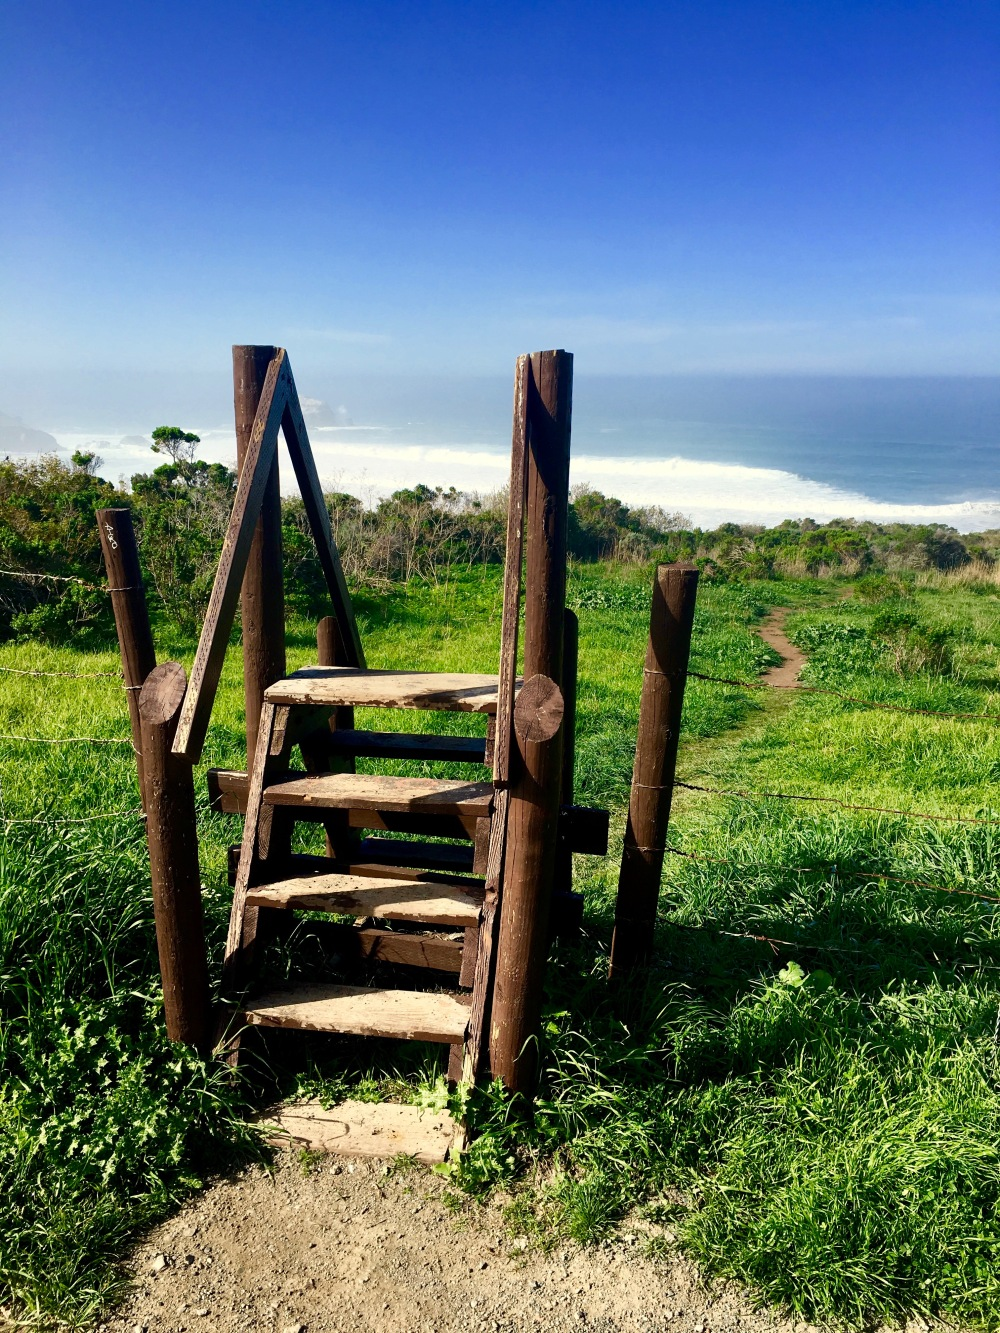 Stairway to the coast